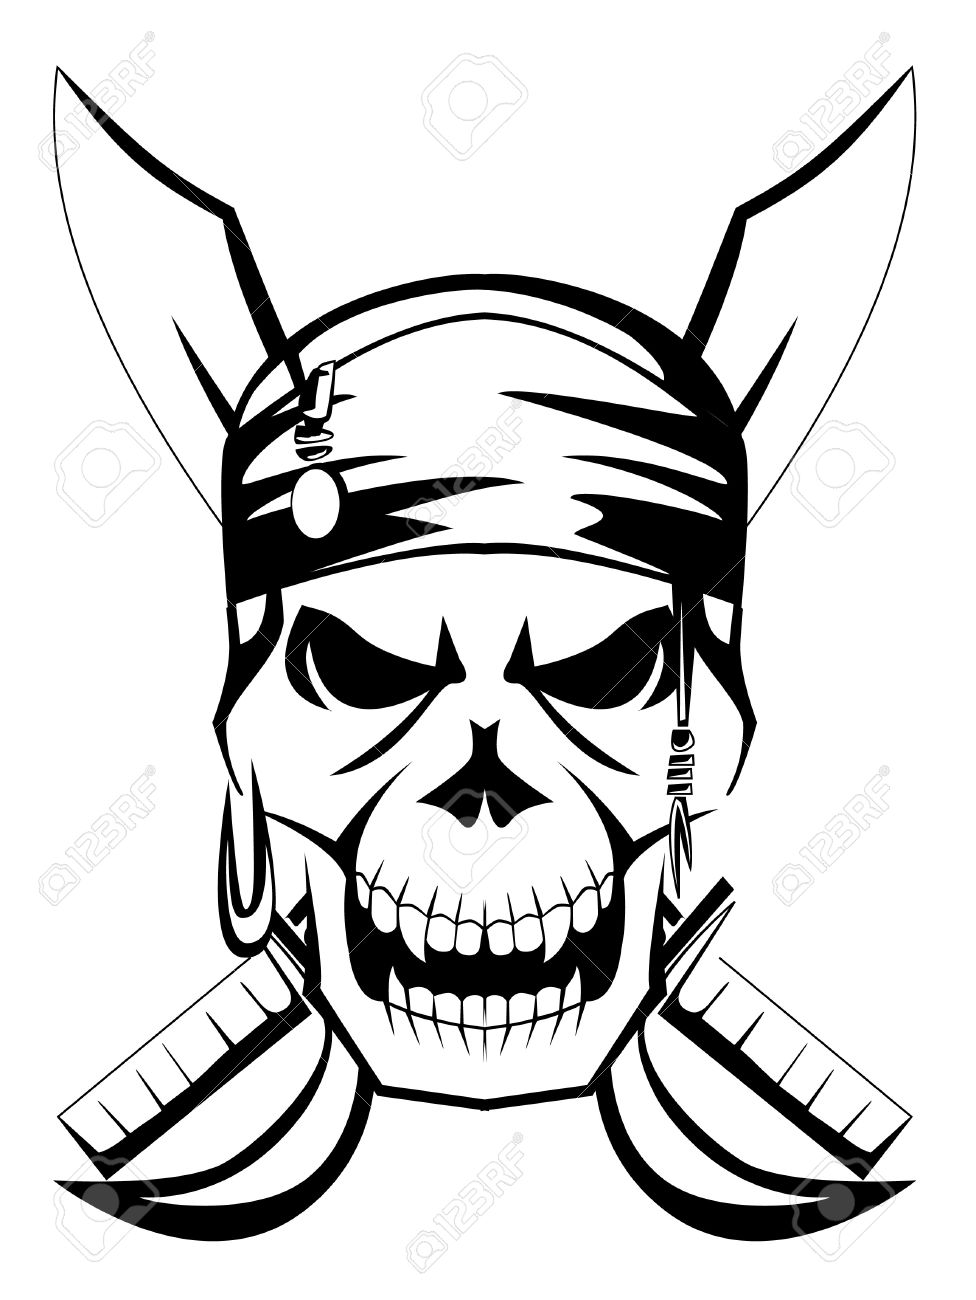 976x1300 Pirate Skull Sword Royalty Free Cliparts Vectors And Stock